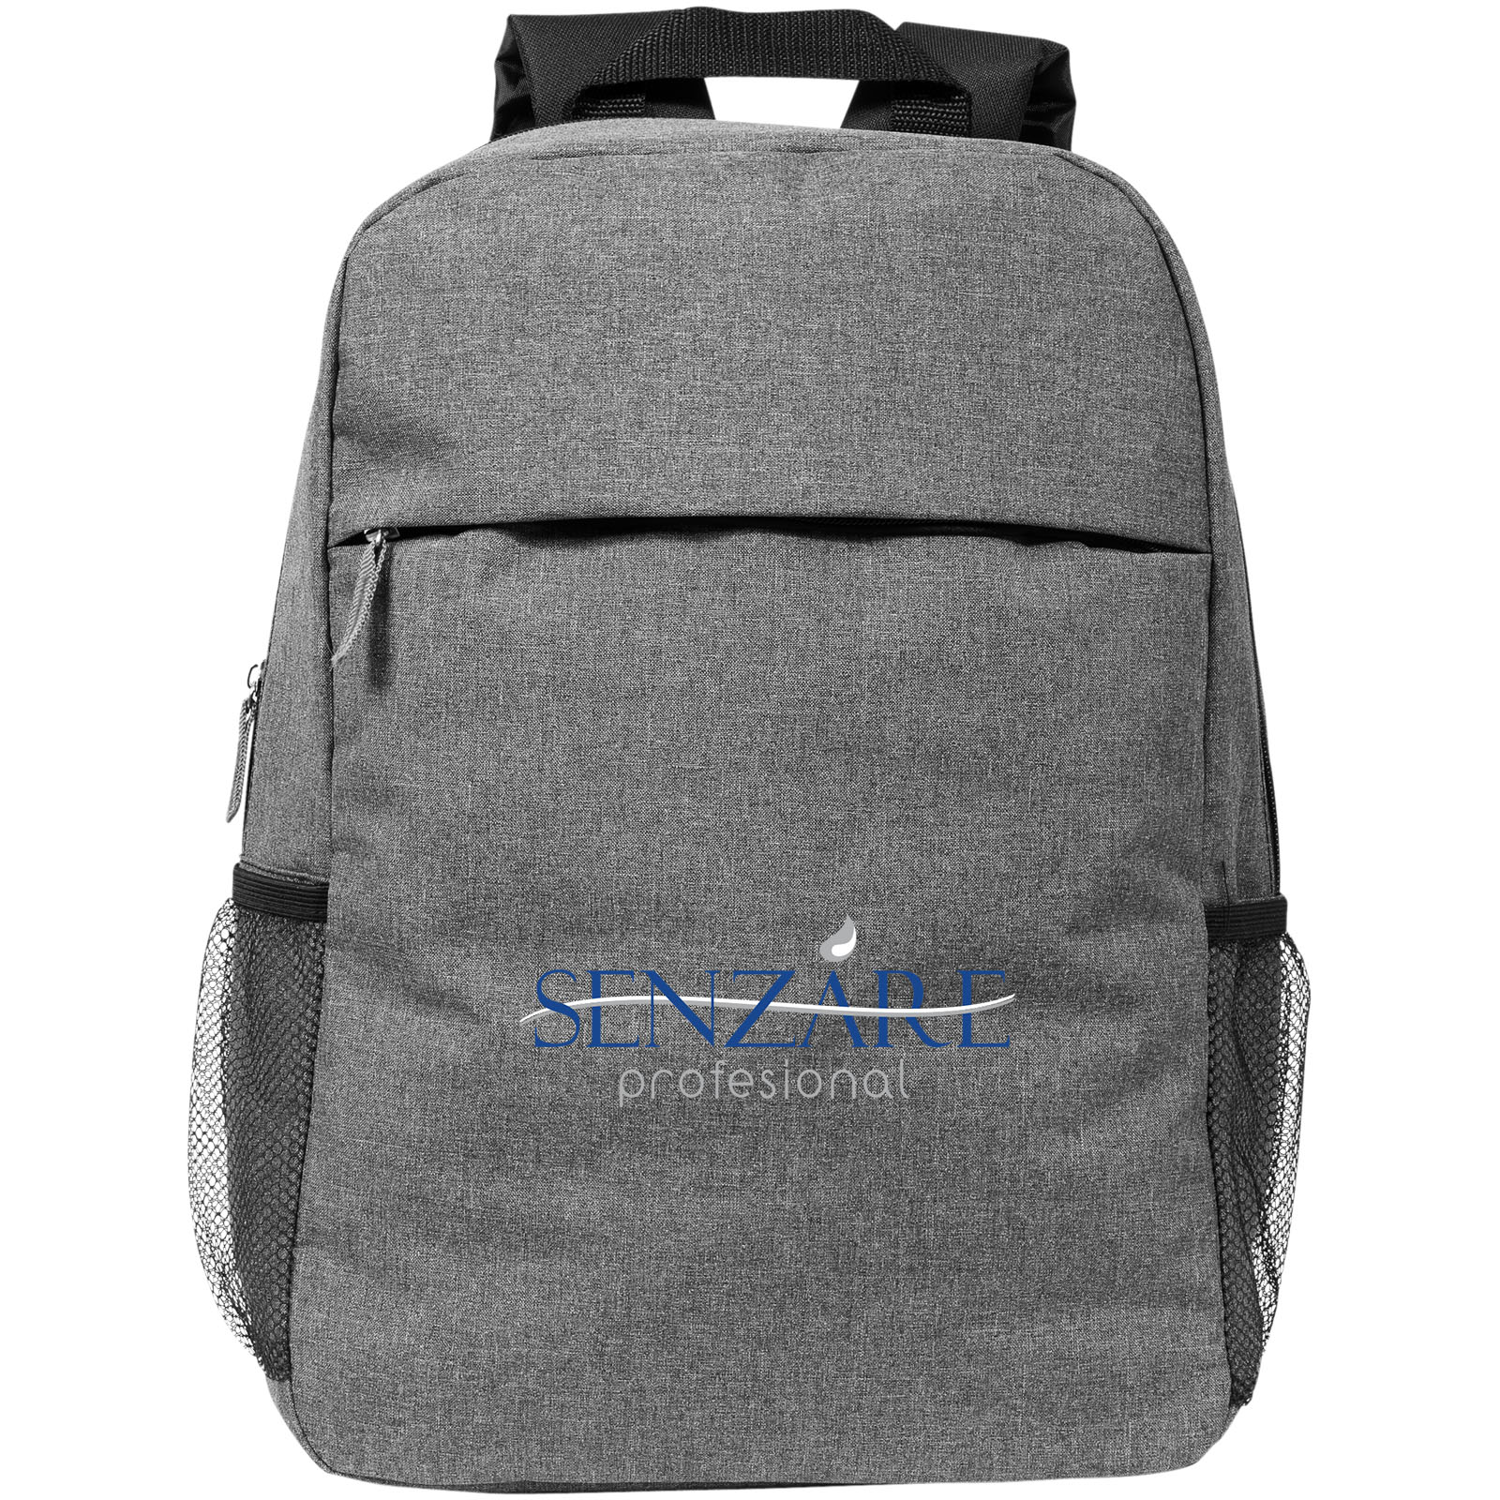 "Hoss 15.6"" Heathered Laptop Backpack"